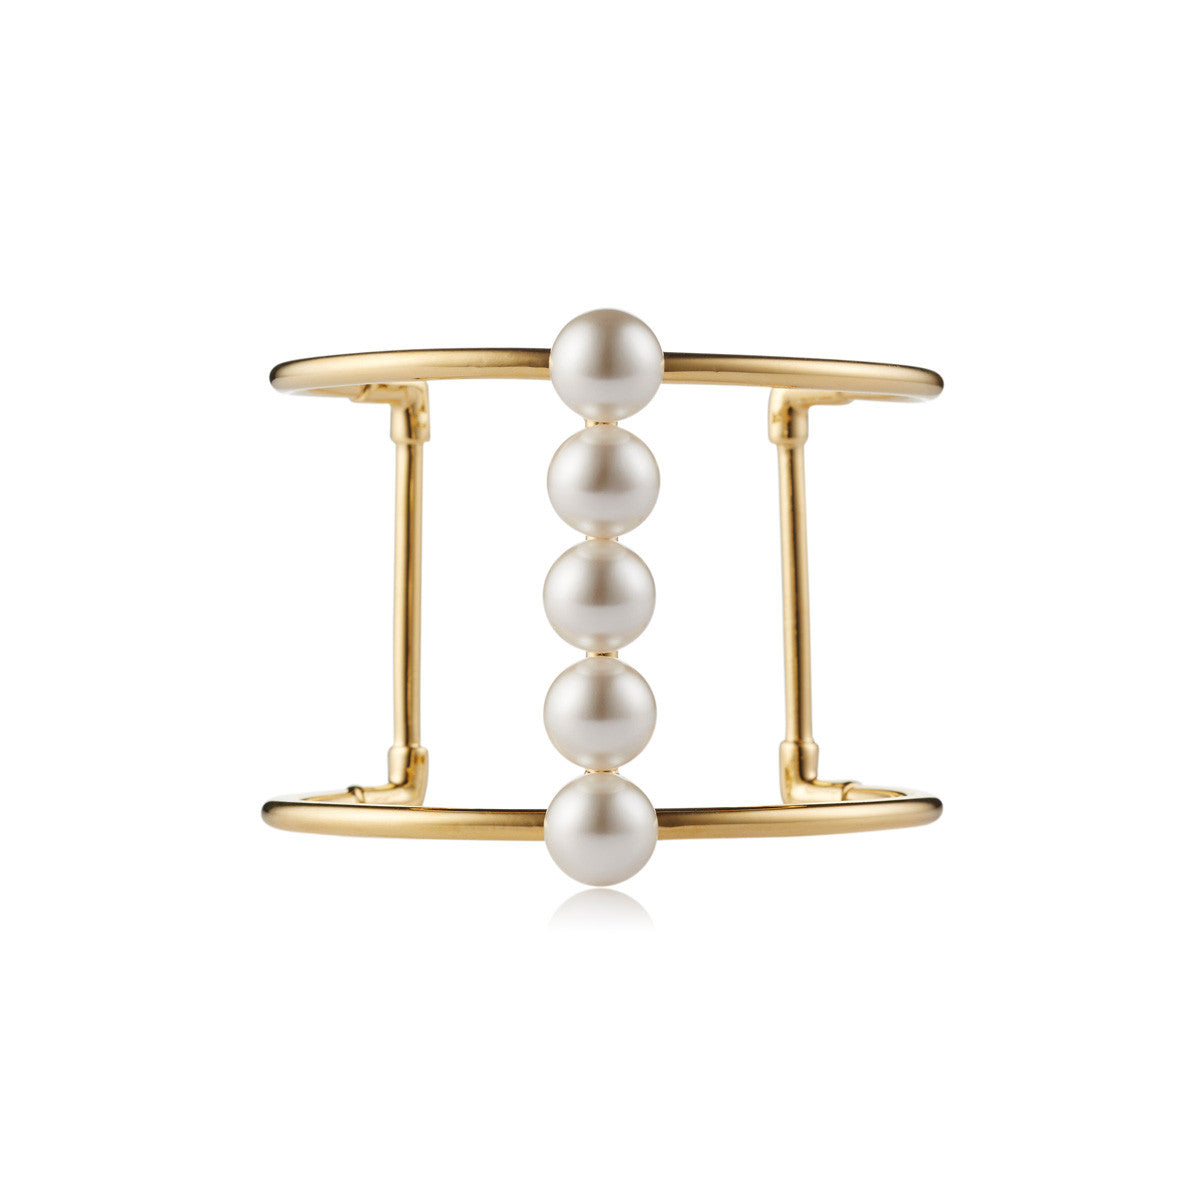 Solid brass, 18K gold plated Moonraker cuff bangle features a bold line of Swarovski® pearls along the centre – front